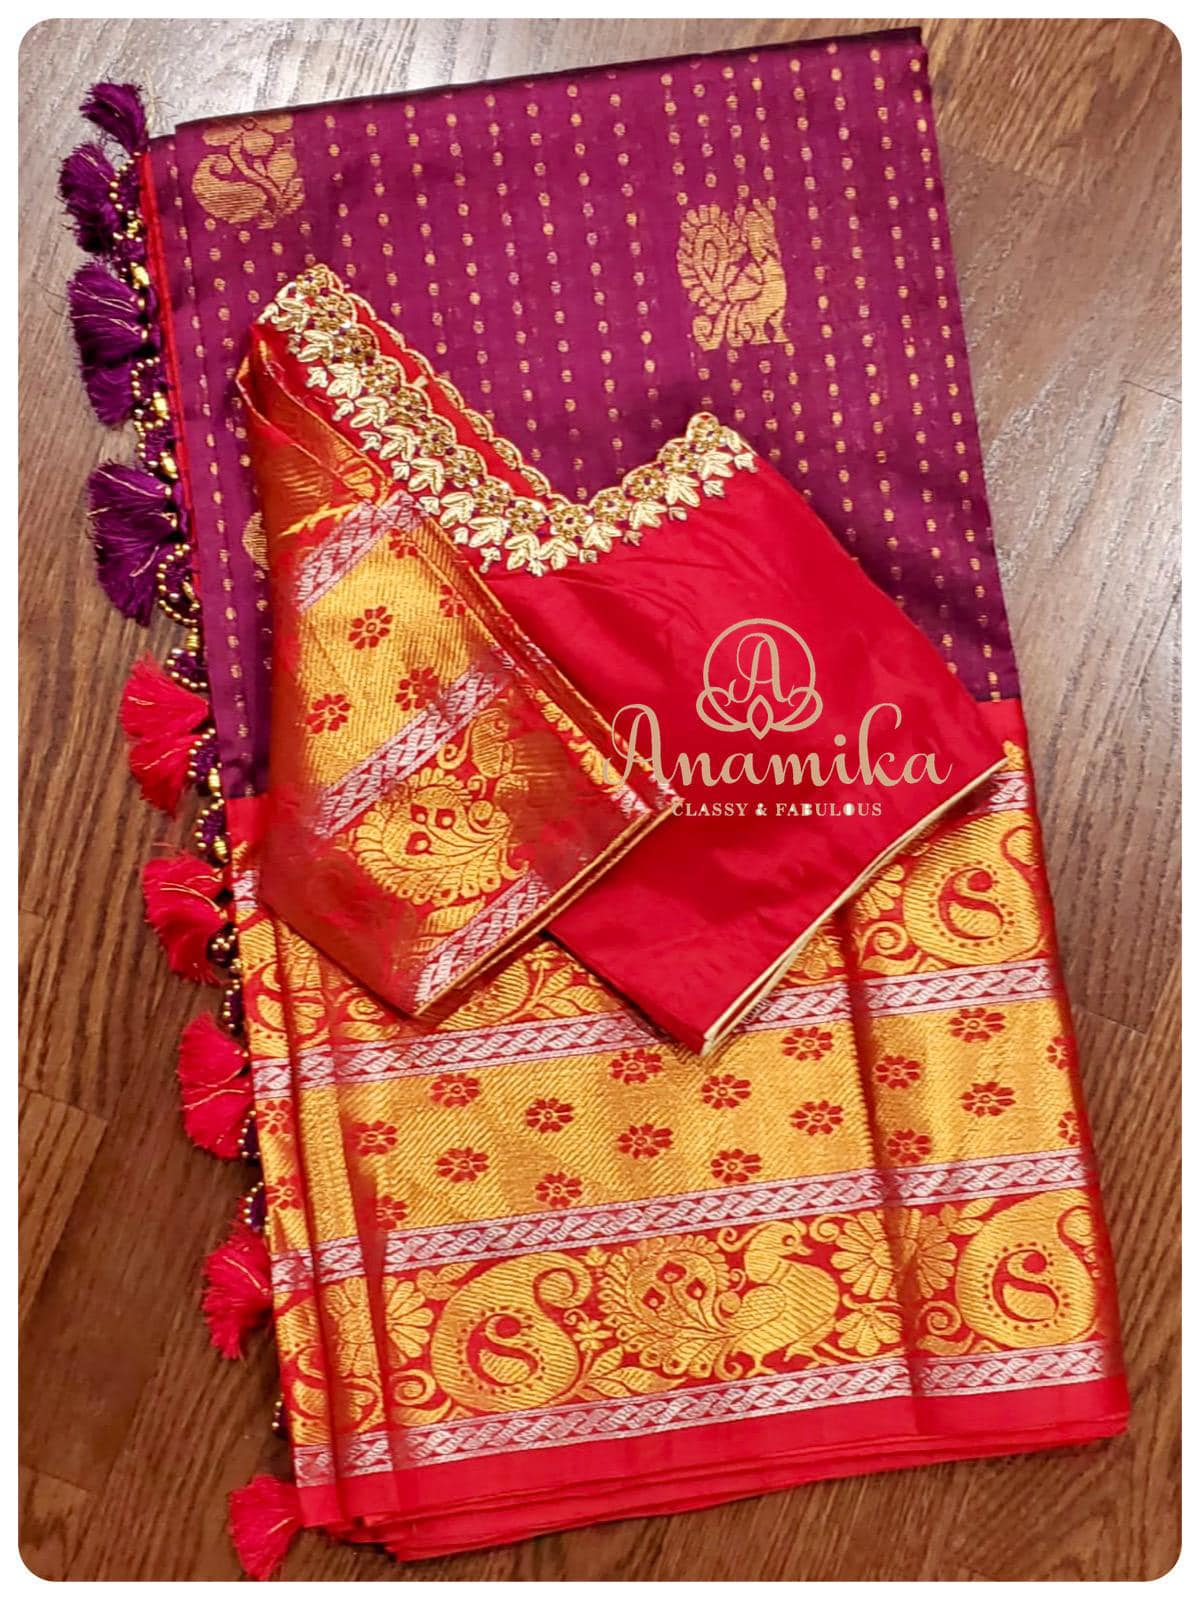 Kuppadam silk saree in a lovely shade of purple with a red kanchi border - so classy and elegant . Paired with a blouse so beautifully and  intricately designed to match the design on the border - simply stunning!! DM 425-598-6797 or 360-545-3636 for enquiries. 2021-03-06